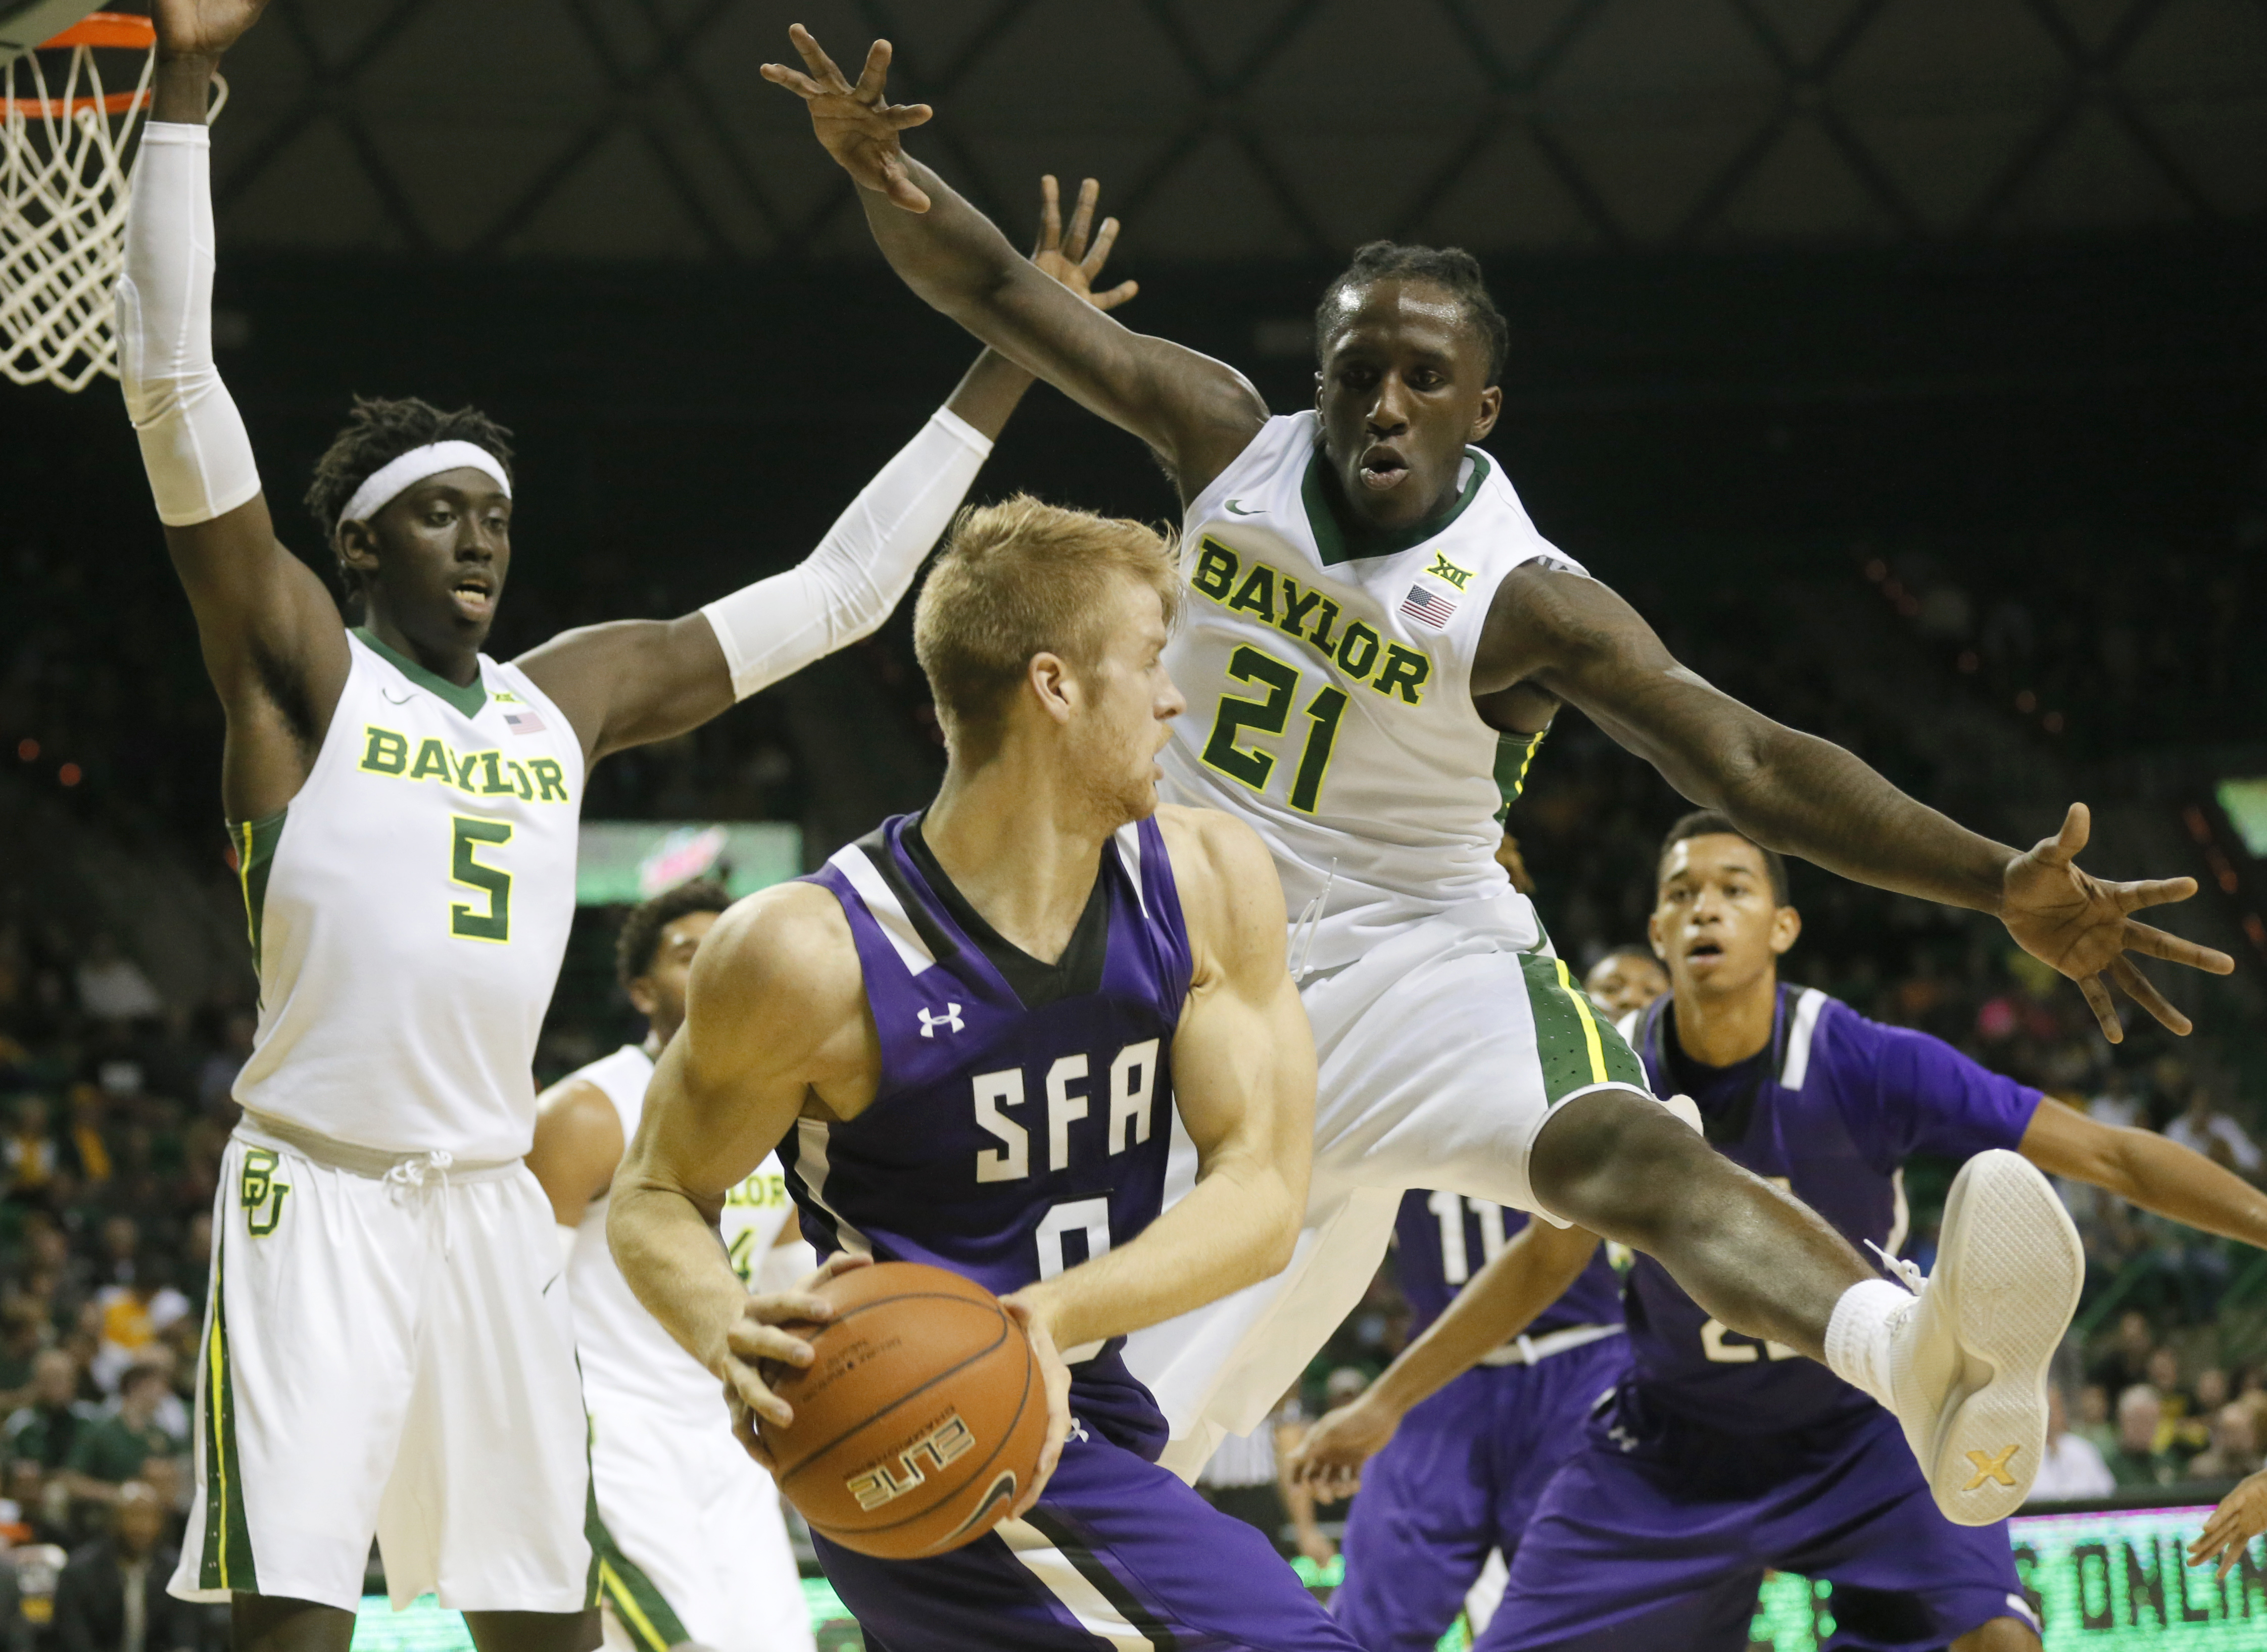 Stephen F. Austin's Thomas Walkup (0) attempts to make a pass as Baylor's Johnathan Motley (5) and Taurean Prince (21) defend in the first half of an NCAA college basketball game Friday, Nov. 13, 2015, in Waco, Texas. (AP Photo/Tony Gutierrez)